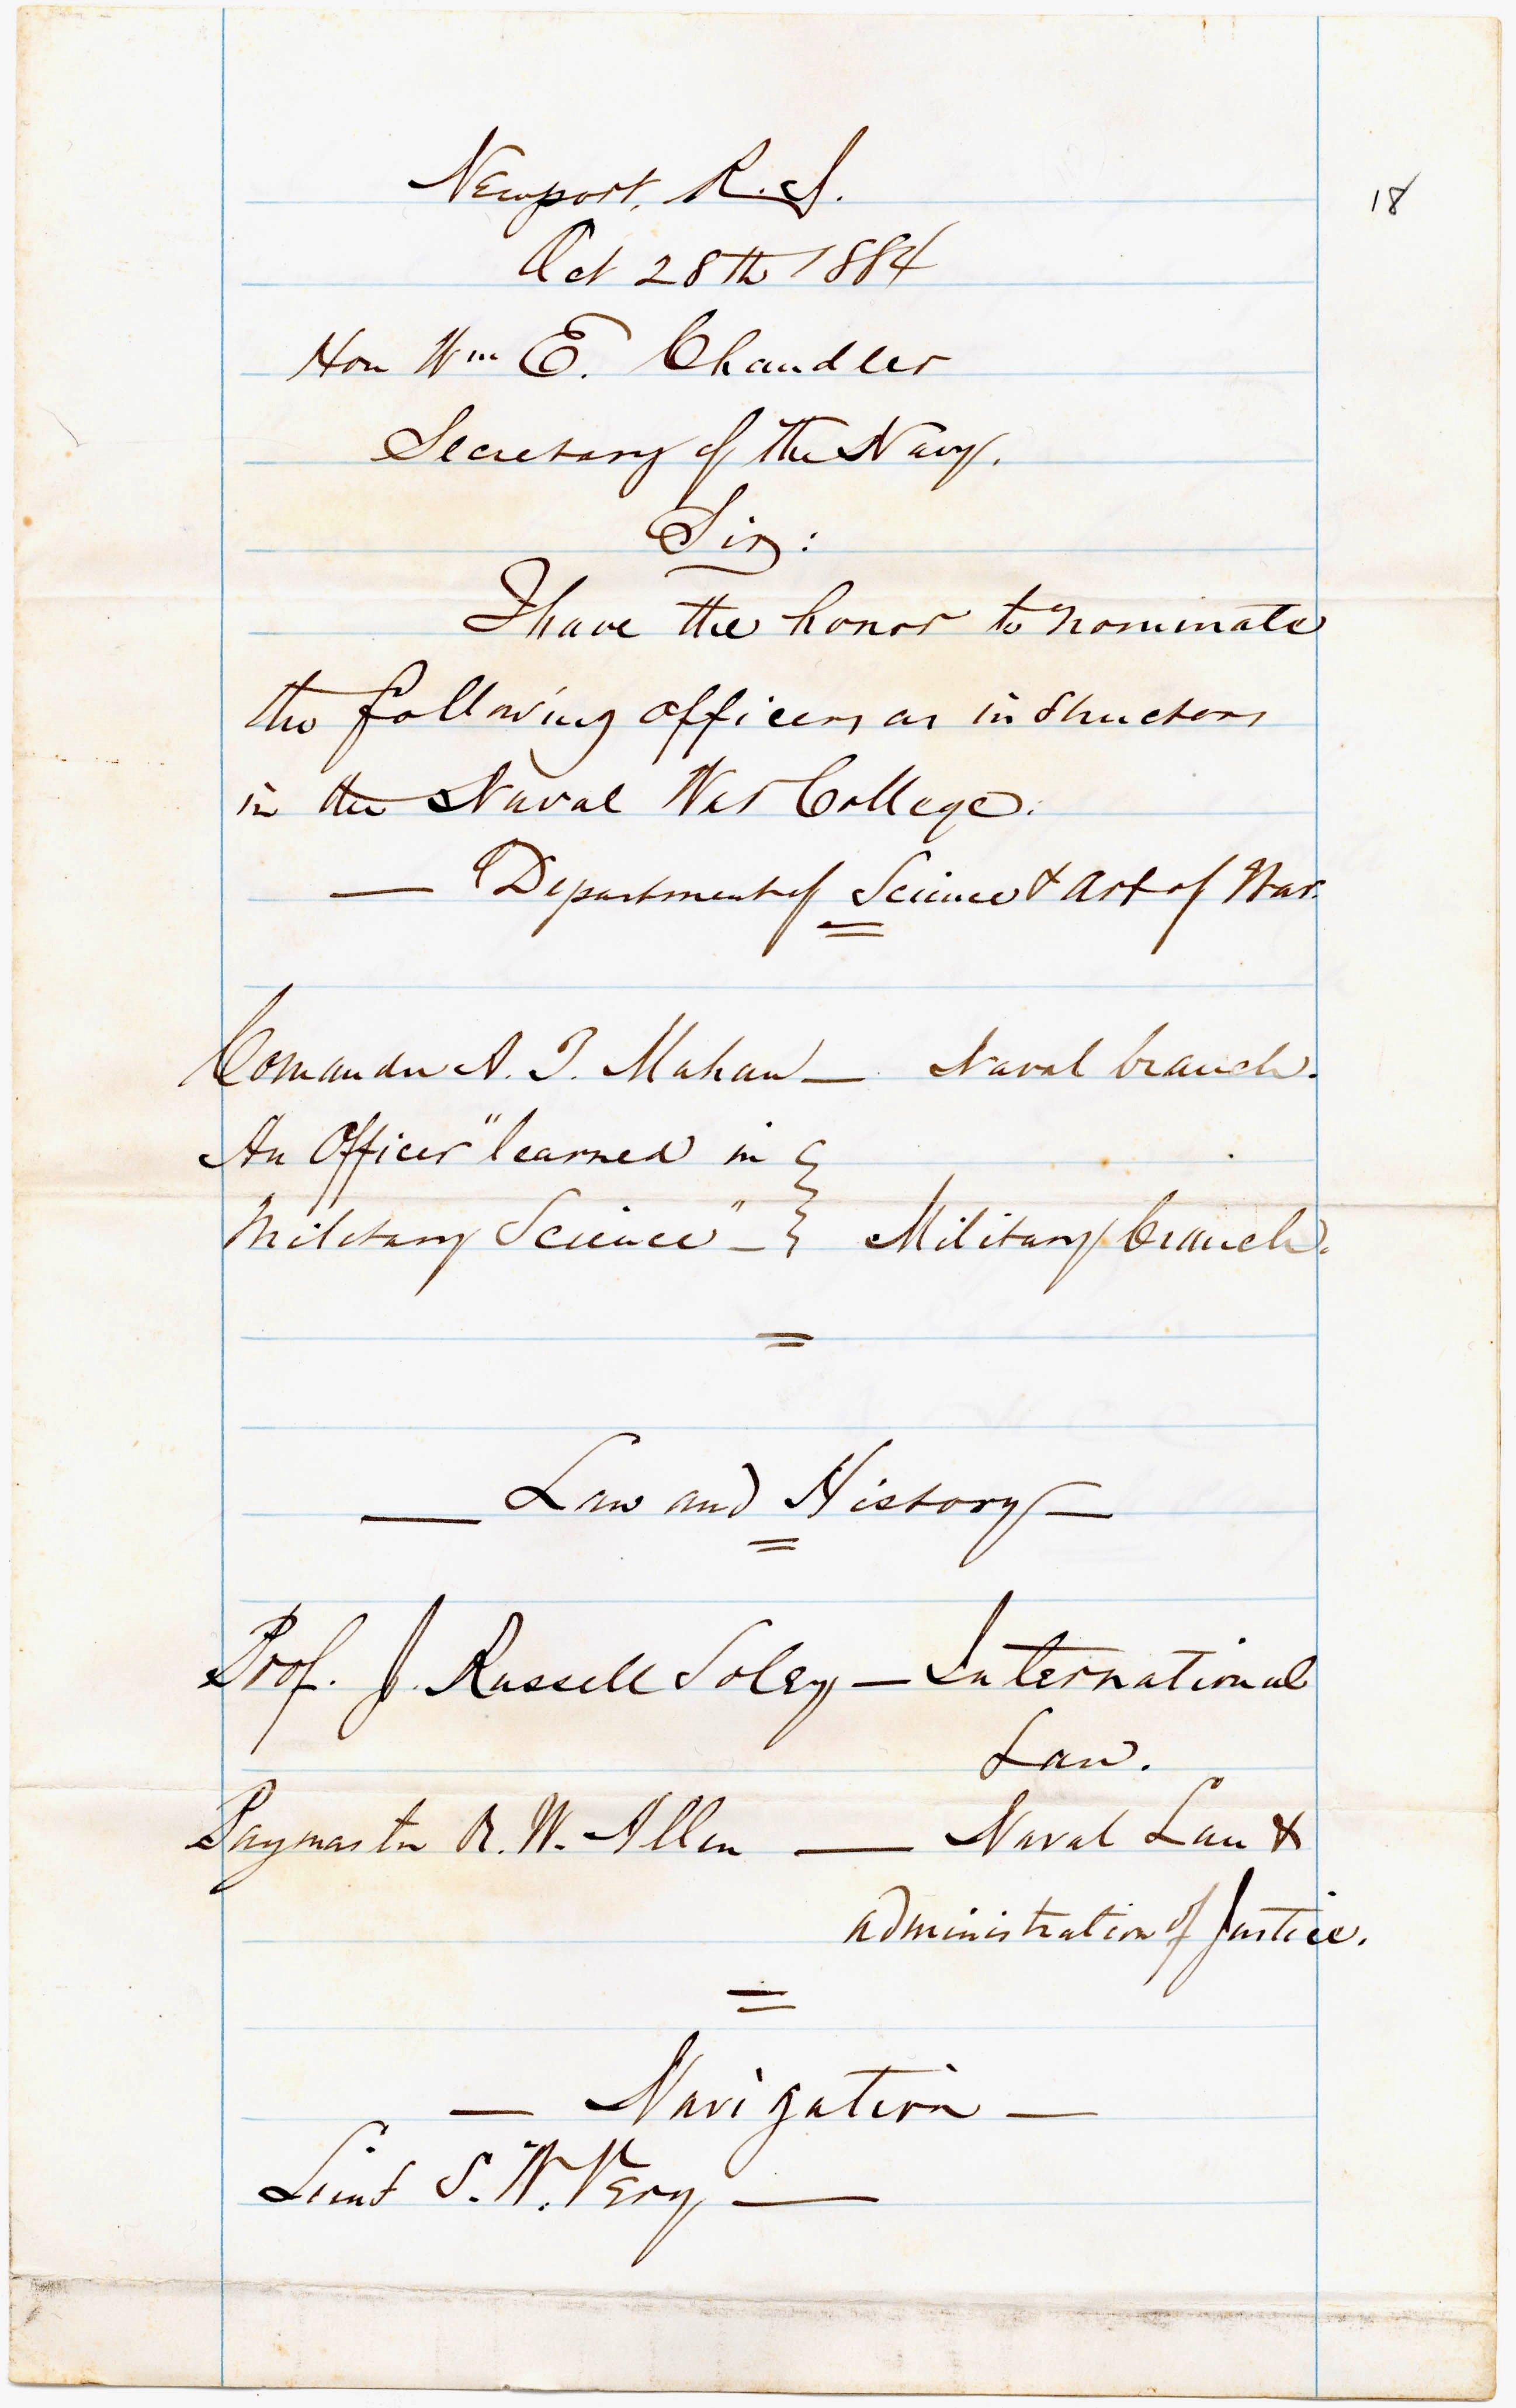 Letter from Stephen B. Luce to William E. Chandler, 1884 Oct 28